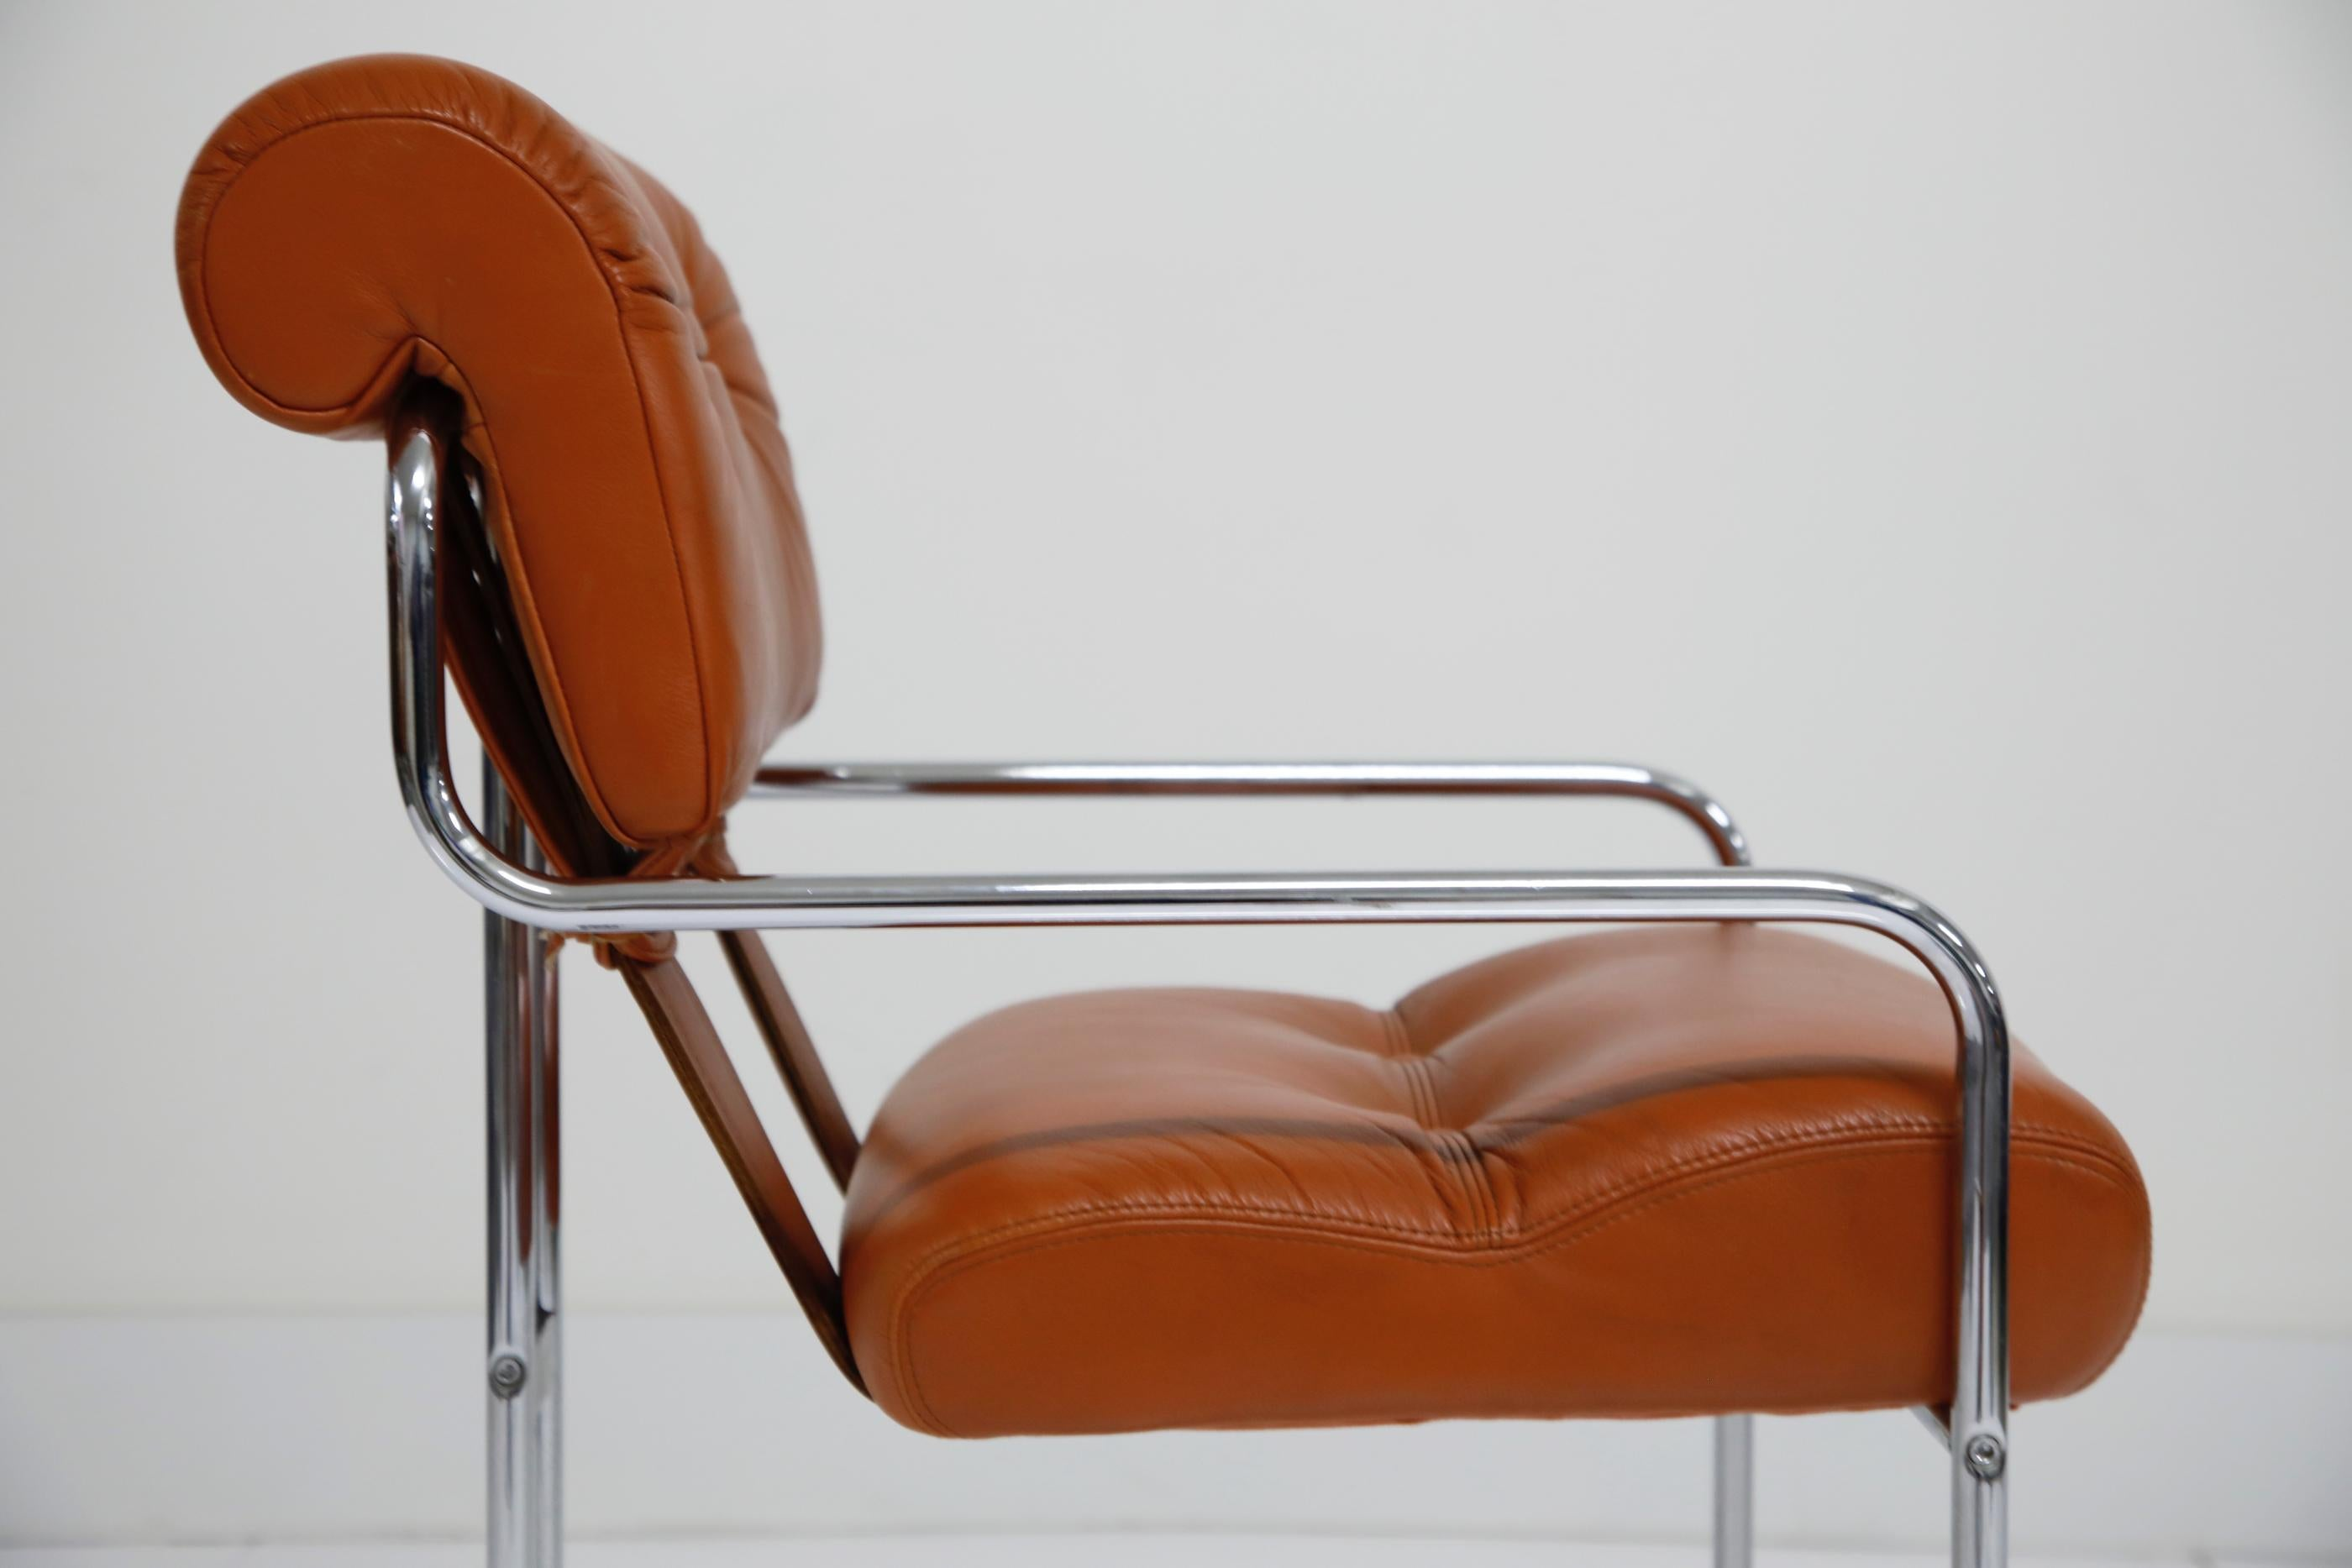 Stupendous Ten Cognac Leather Tucroma Chairs By Guido Faleschini For Bralicious Painted Fabric Chair Ideas Braliciousco